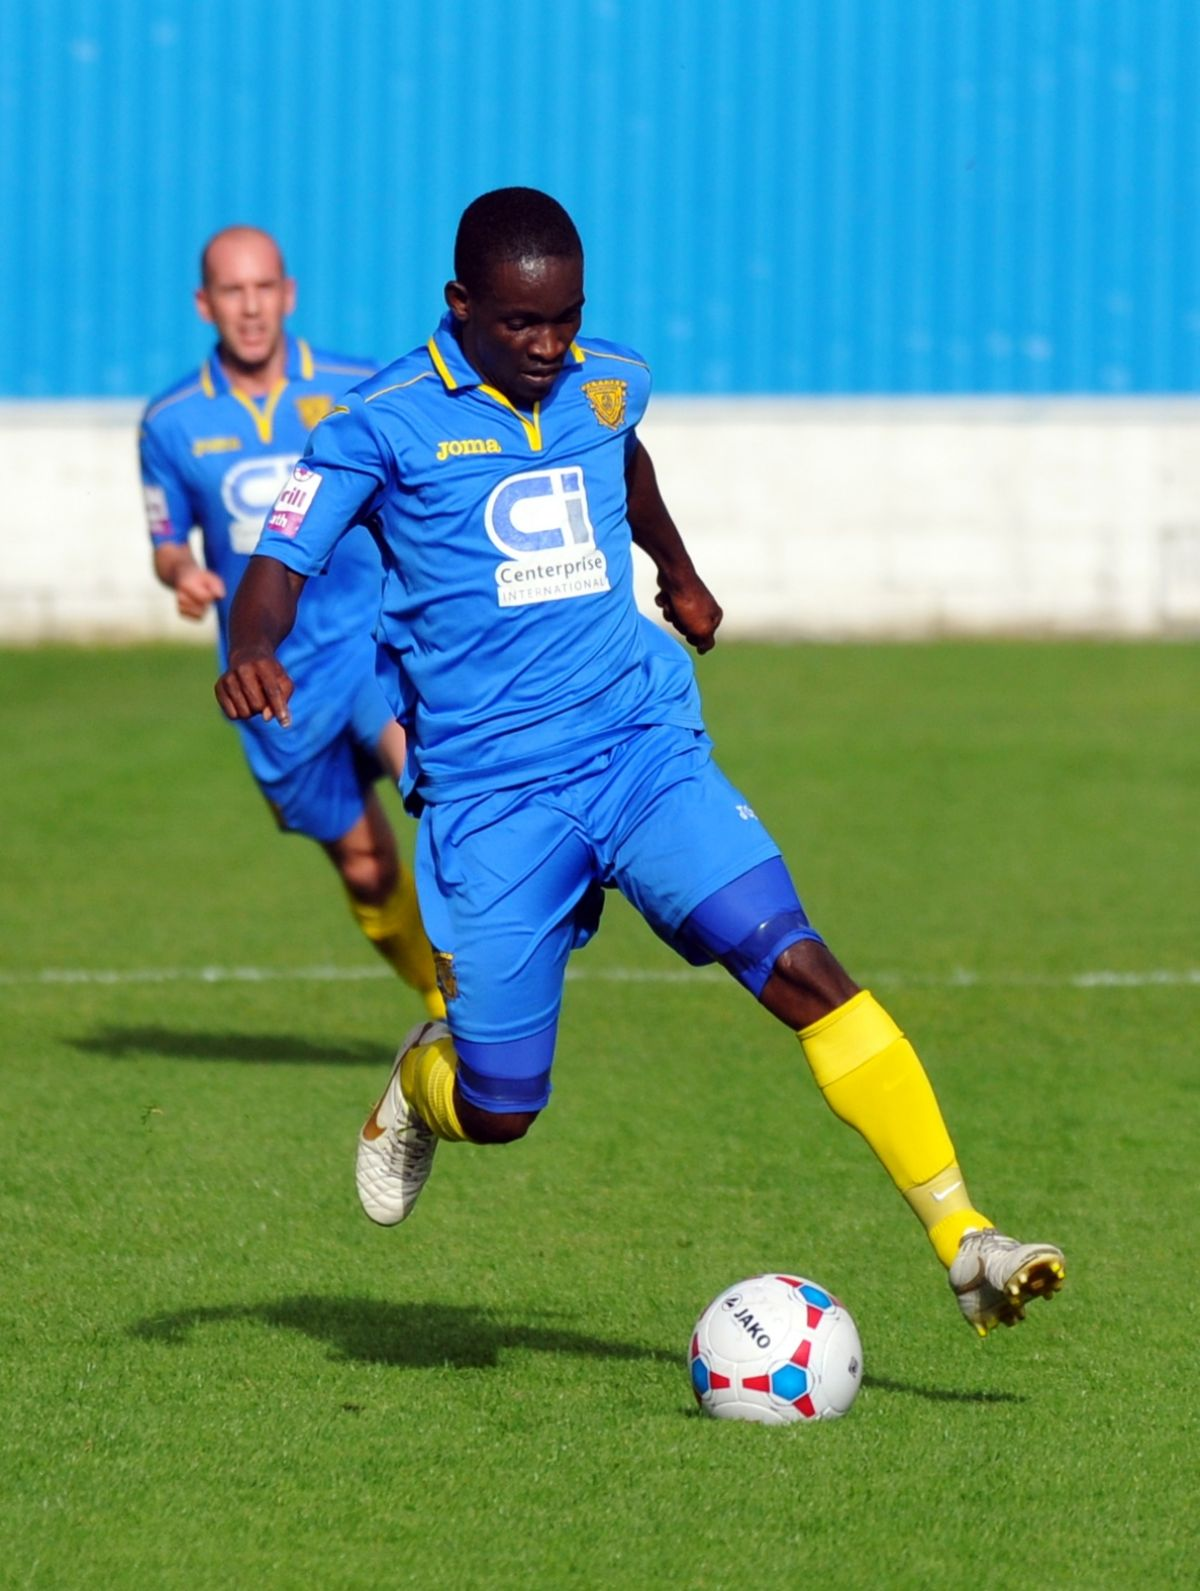 Manny Williams bagged a brace as Basingstoke Town beat local rivals Farnborough.